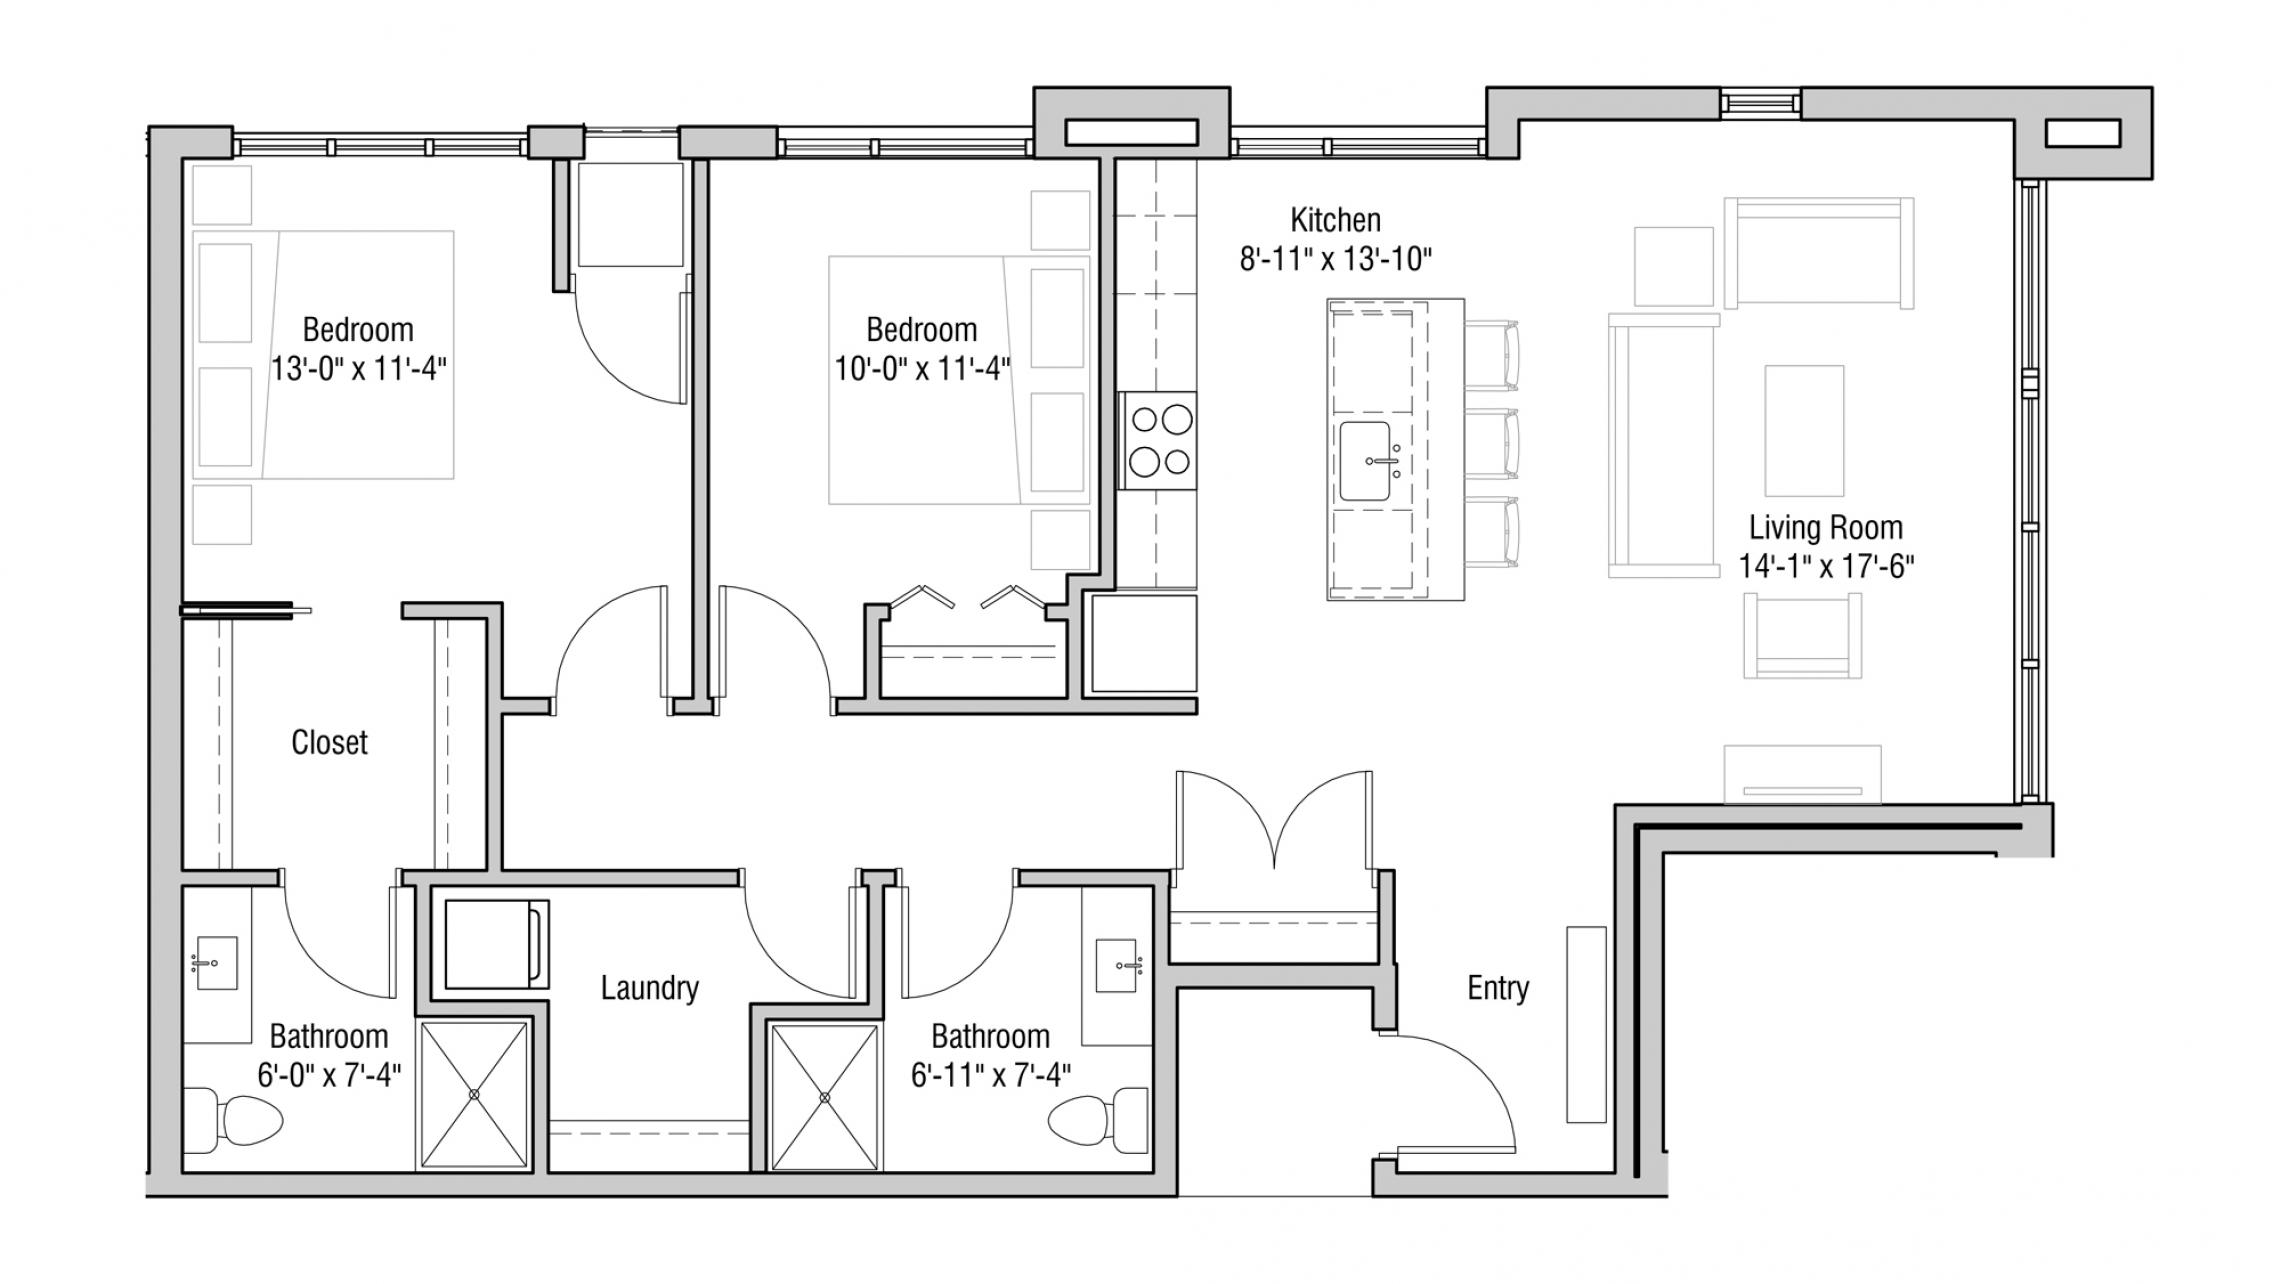 ULI Quarter Row 415 - Two Bedroom, Two Bathroom